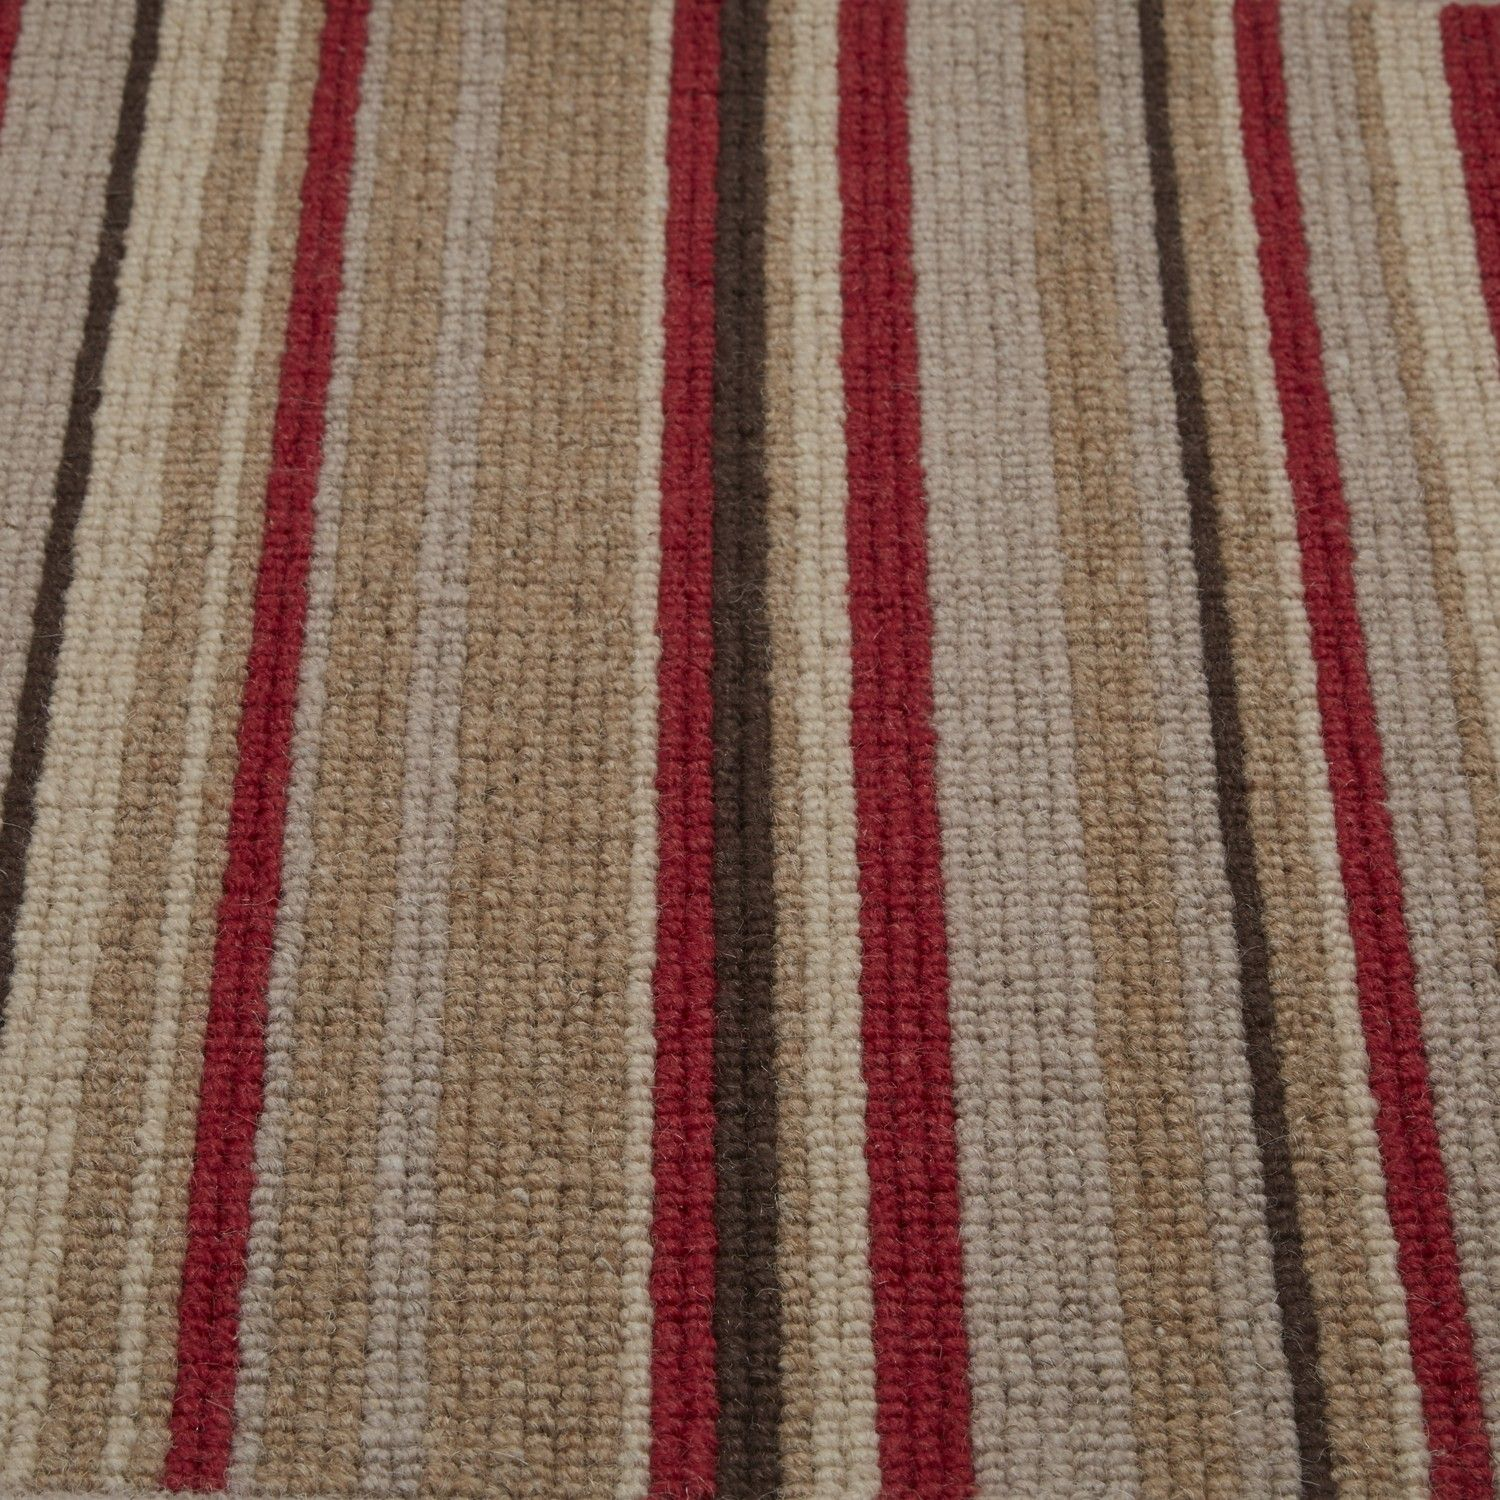 Residence Striped Carpet Carpetright Striped carpets